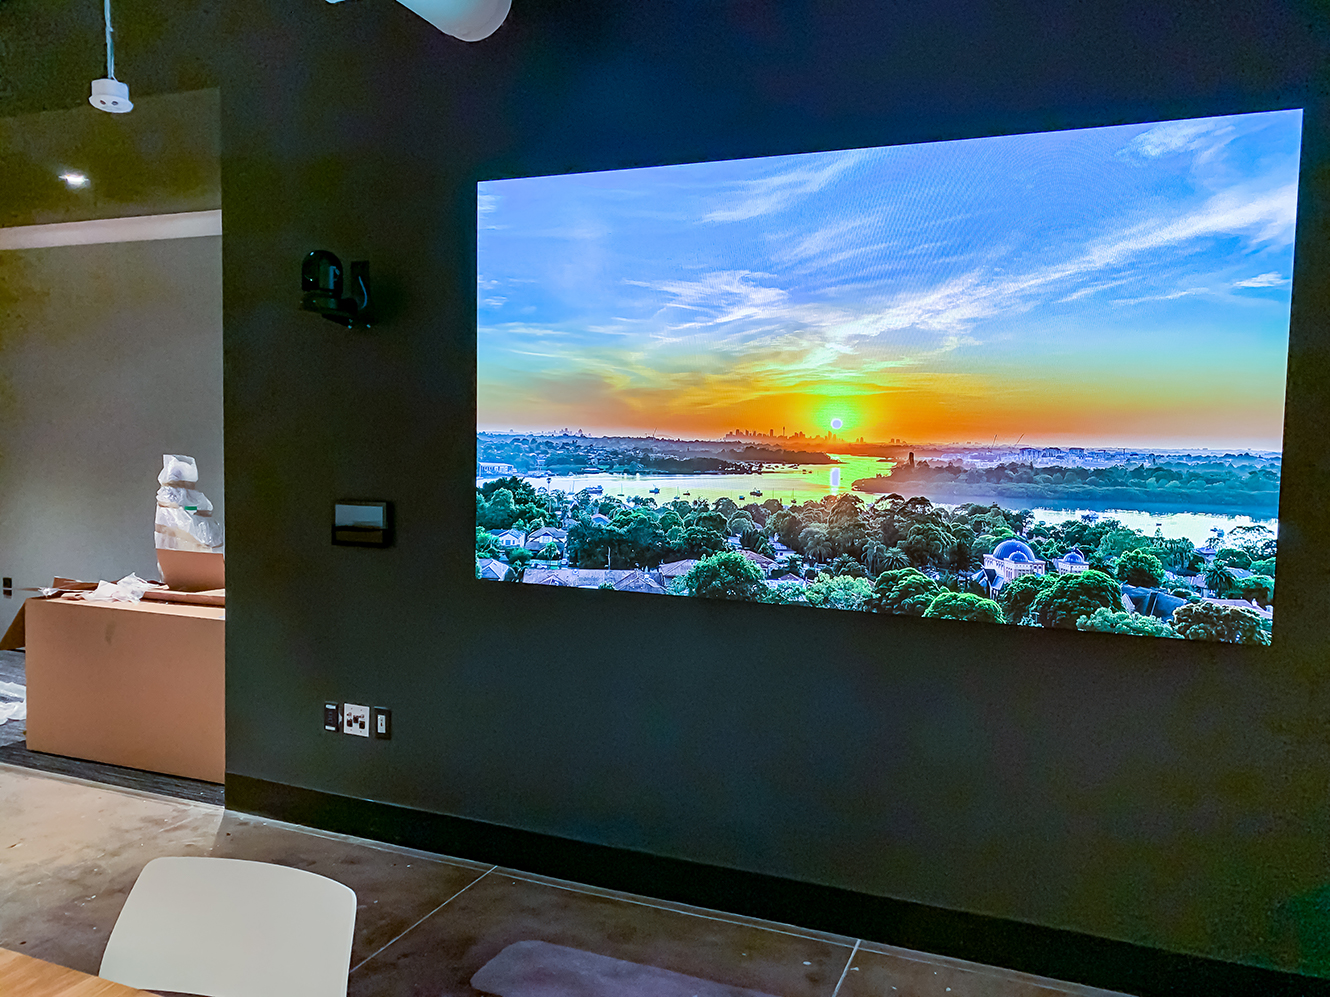 A Samsung videowall installed in Twitch's NYC HQ All Hands event space